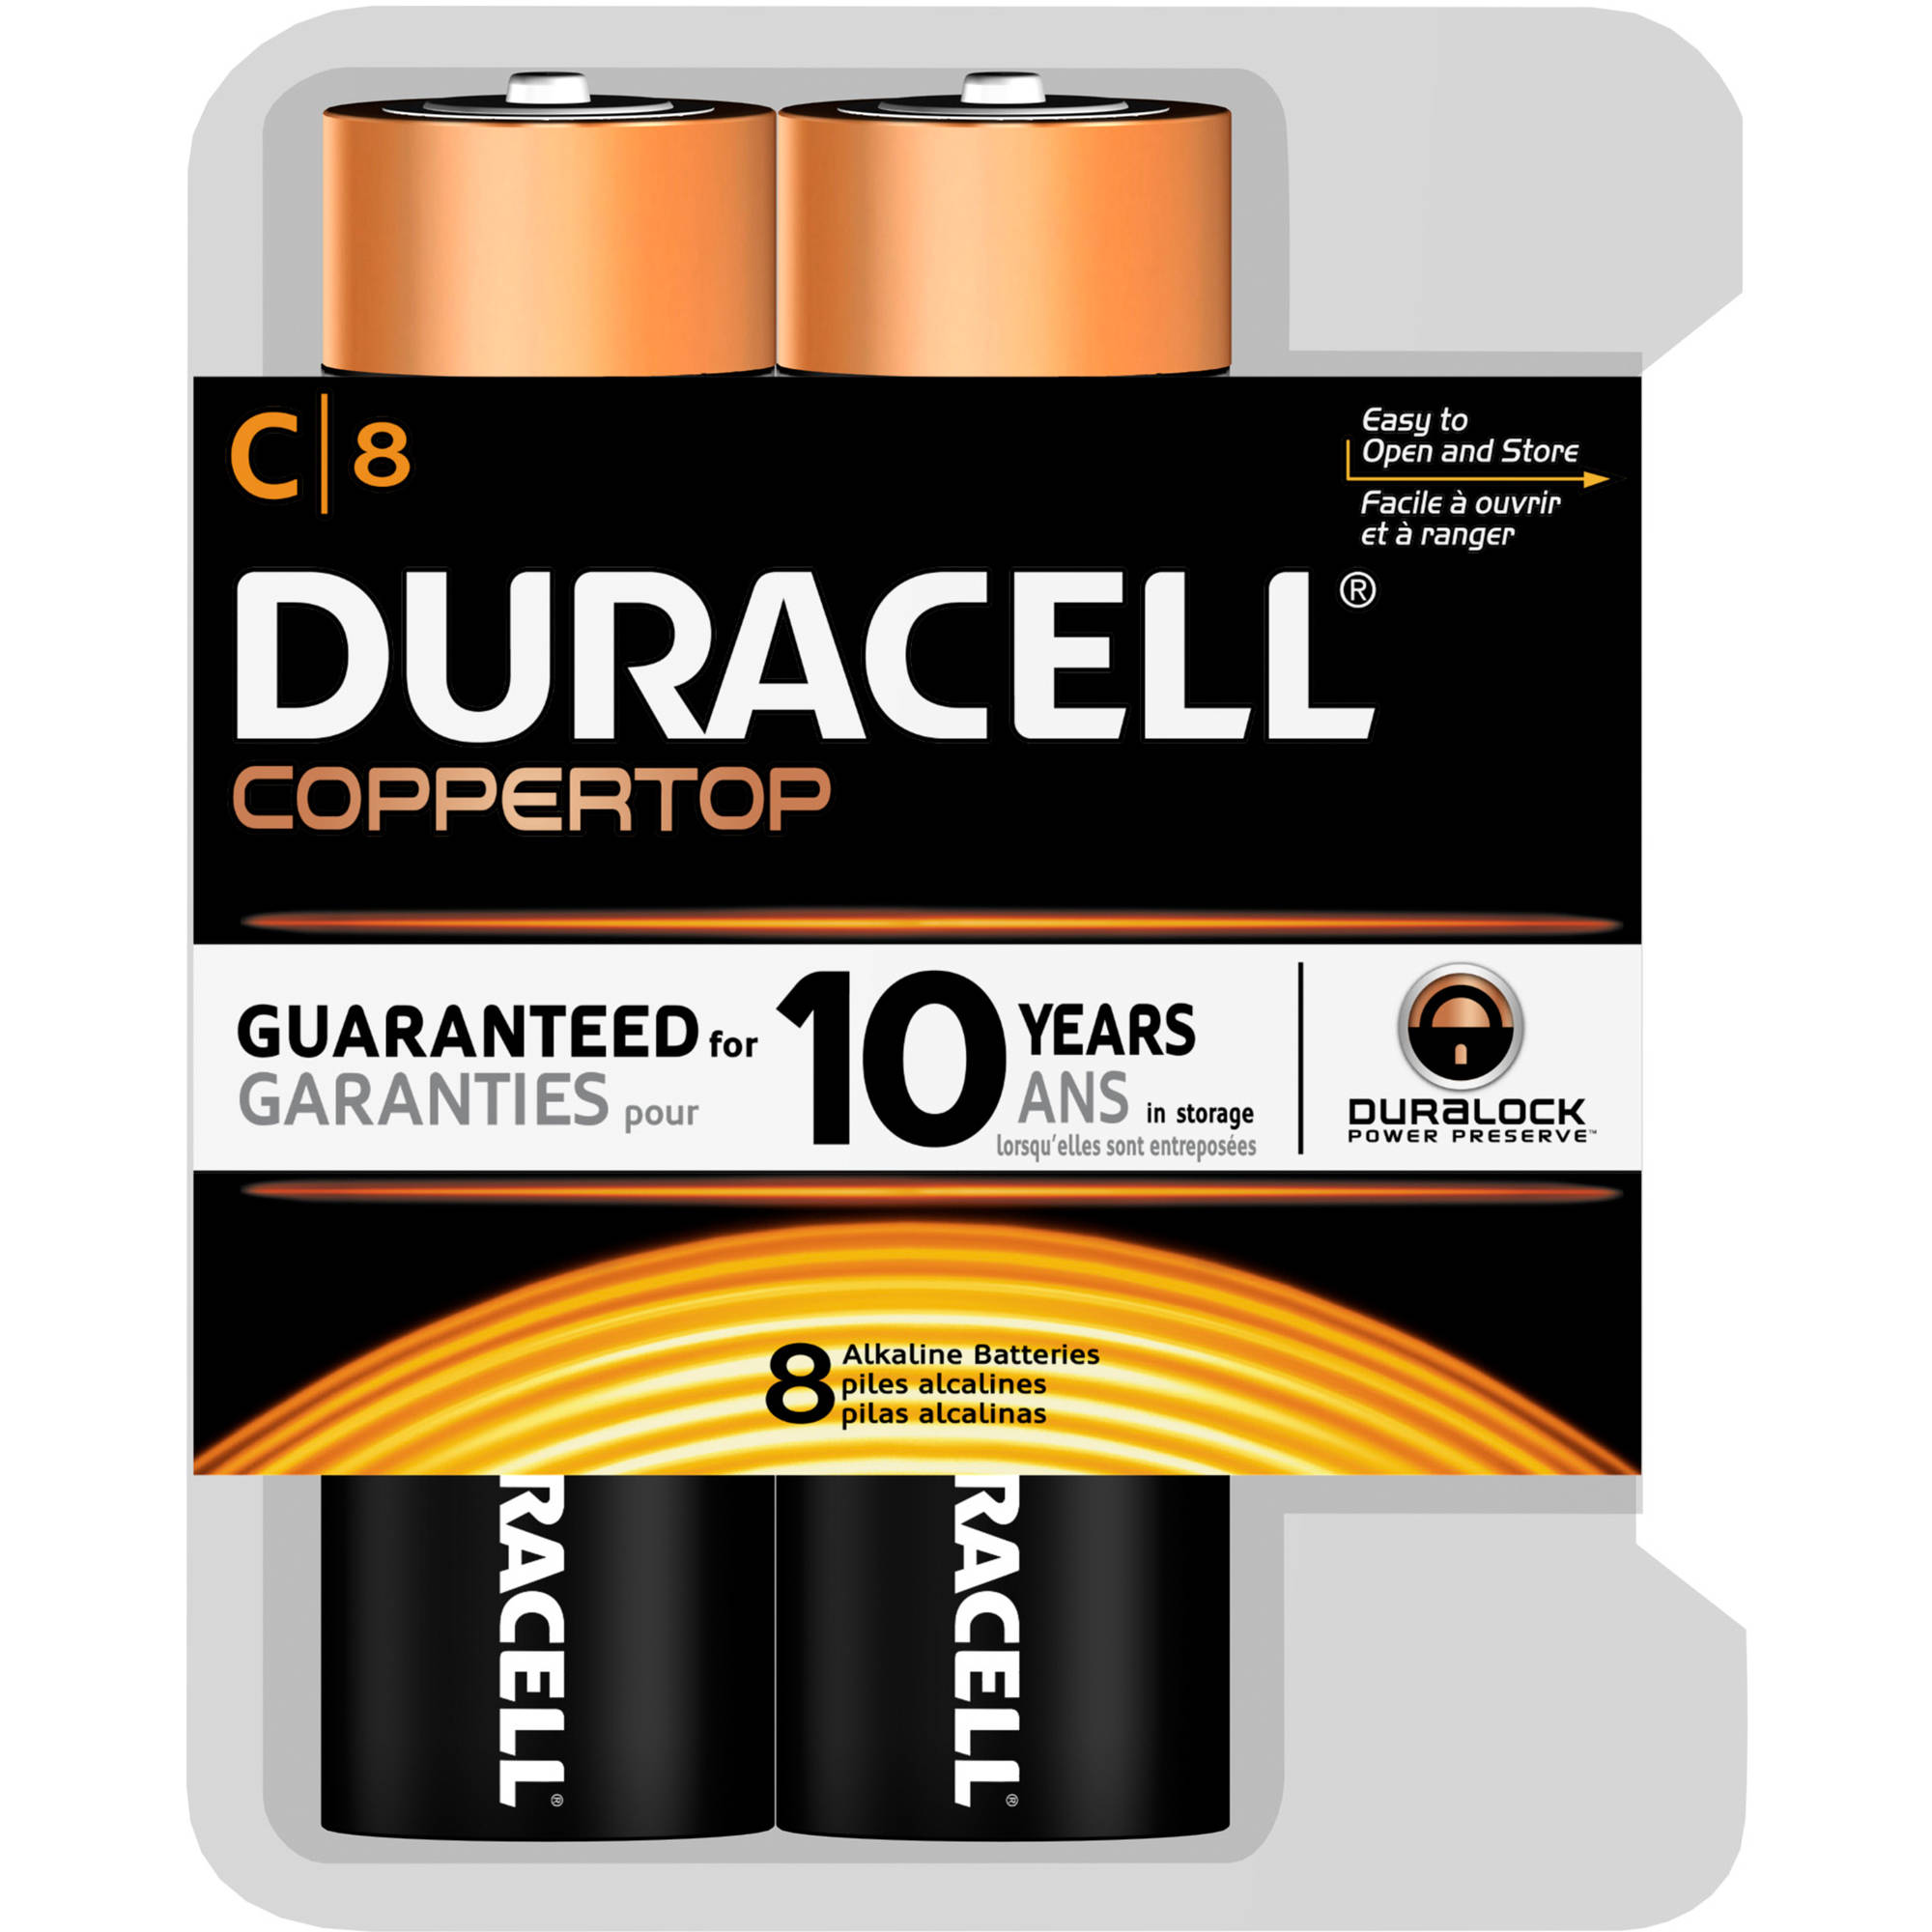 Duracell CopperTop C Alkaline Batteries, 8 count